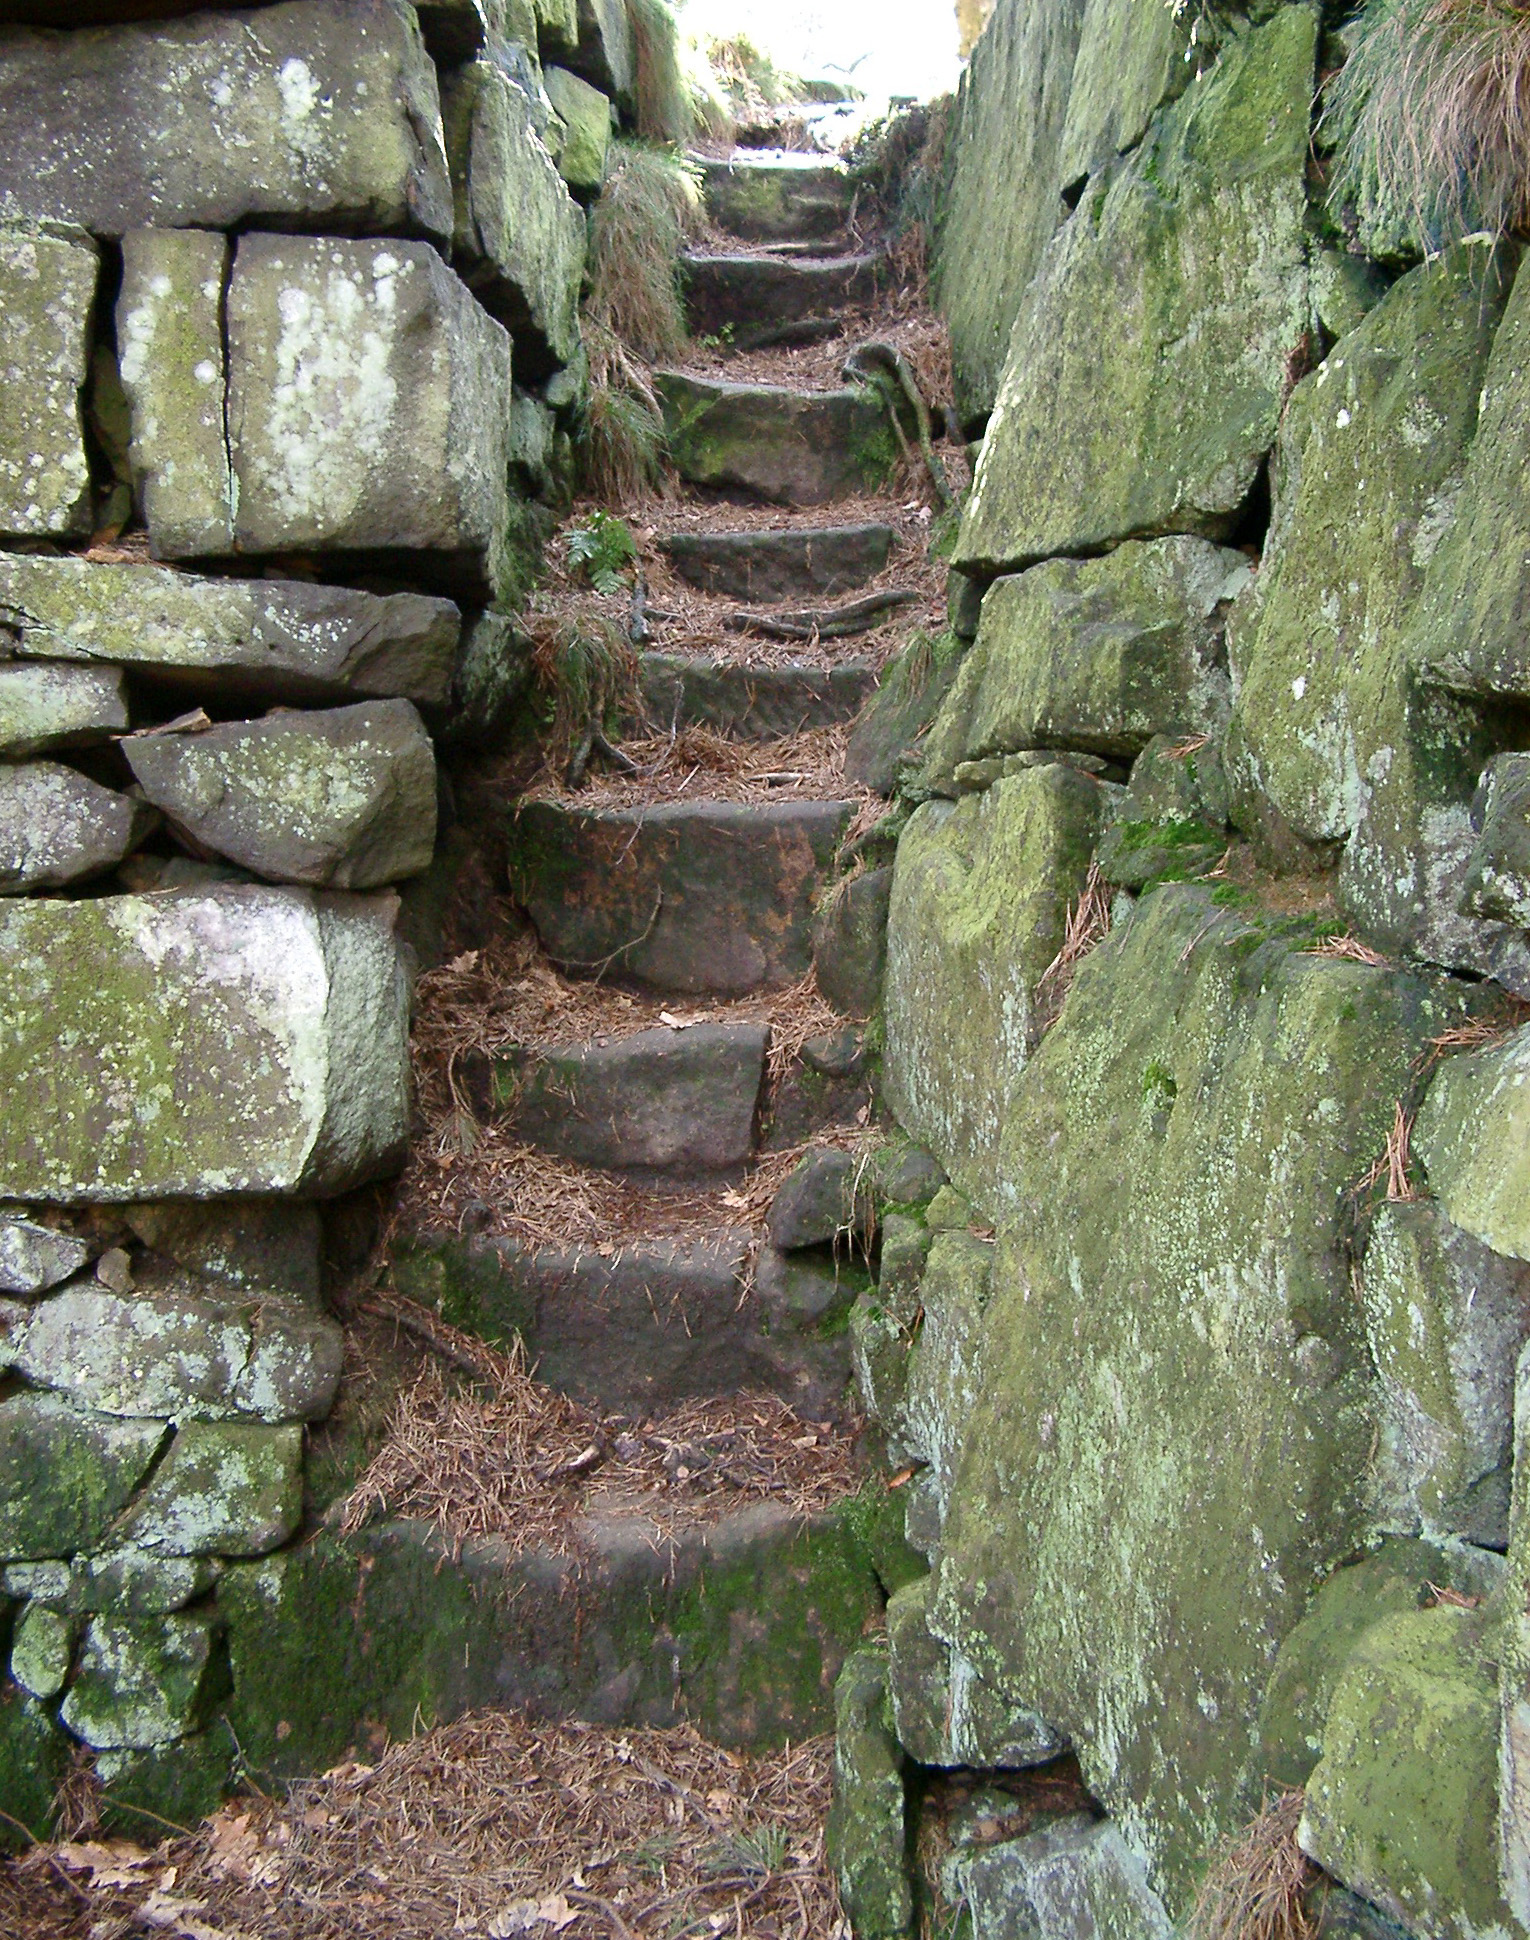 Natural Stone Stairs : Free stock photo of old narrow natural stone steps